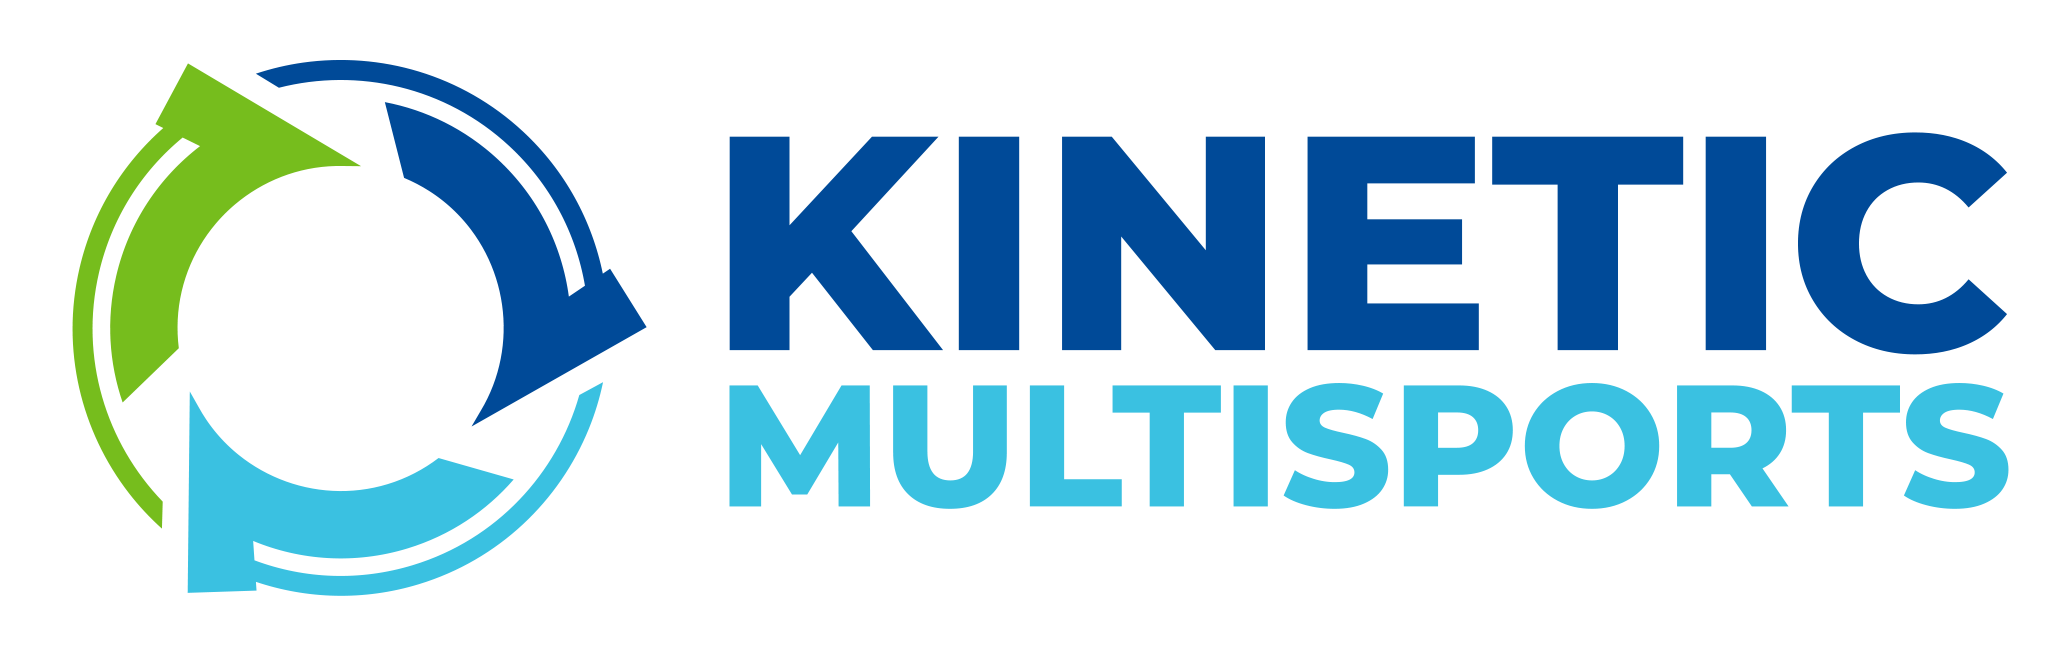 Kinetic-Multisports-logo